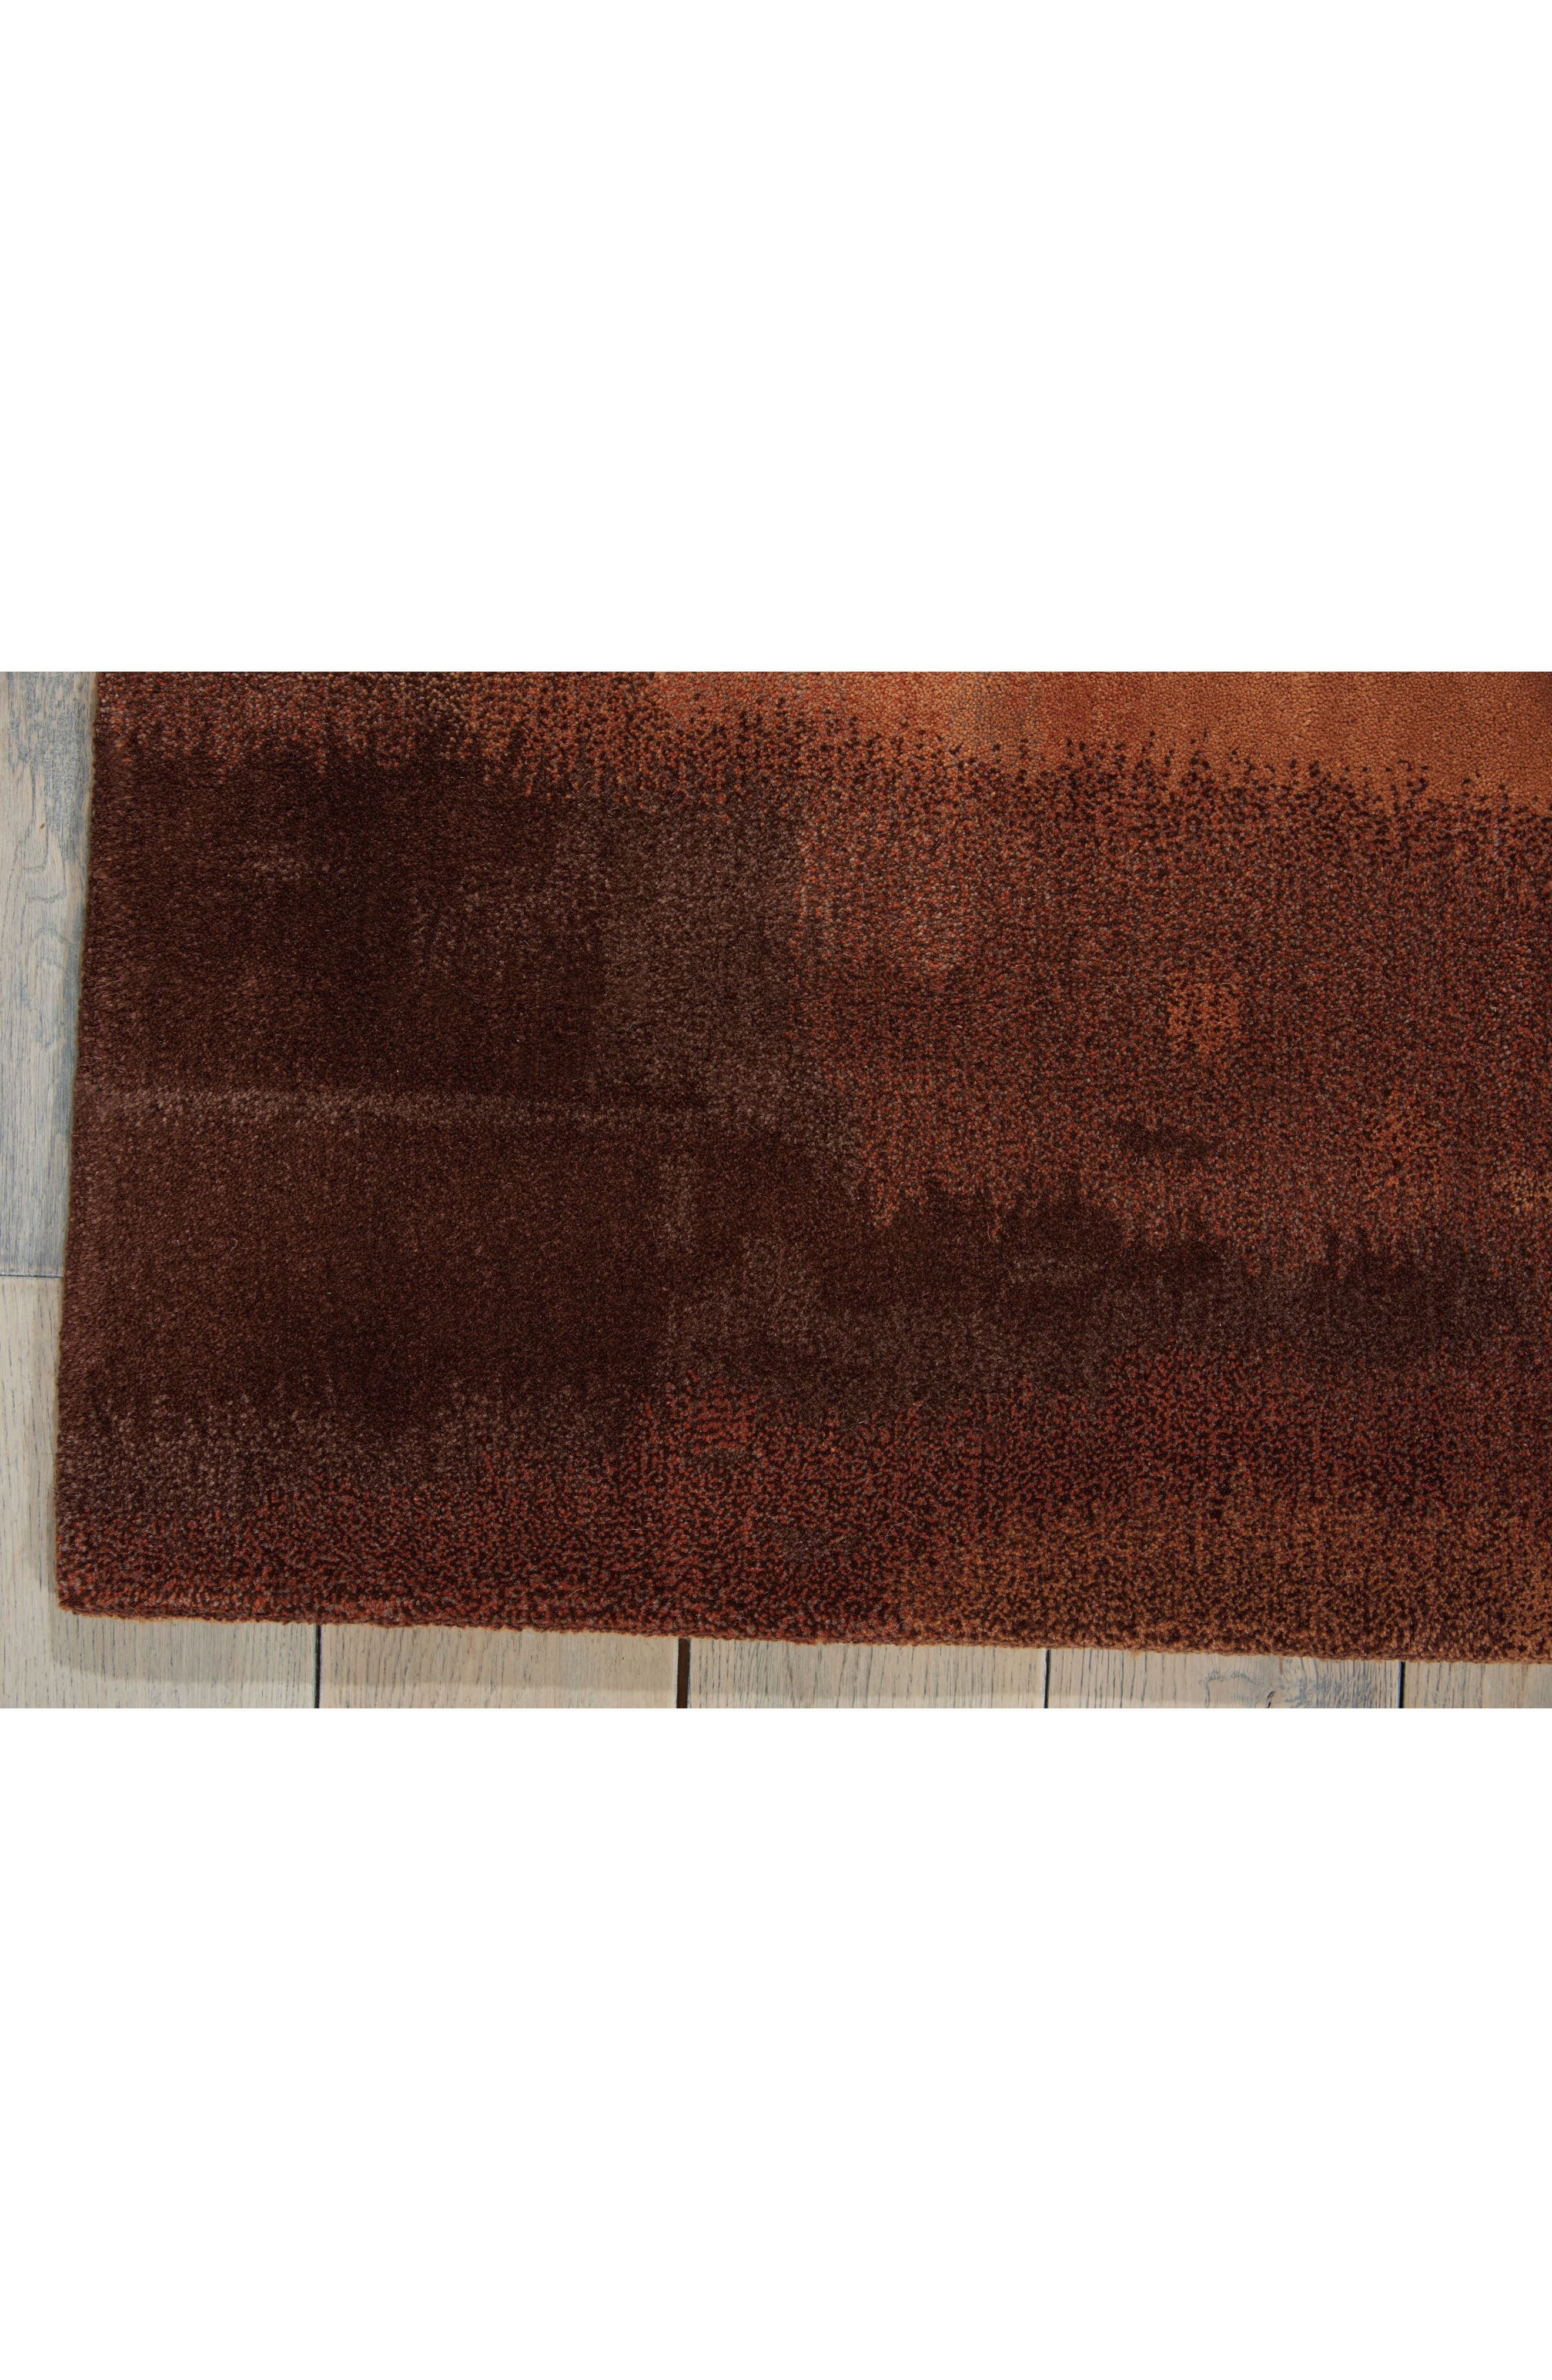 Luster Wash Wool Area Rug,                             Alternate thumbnail 11, color,